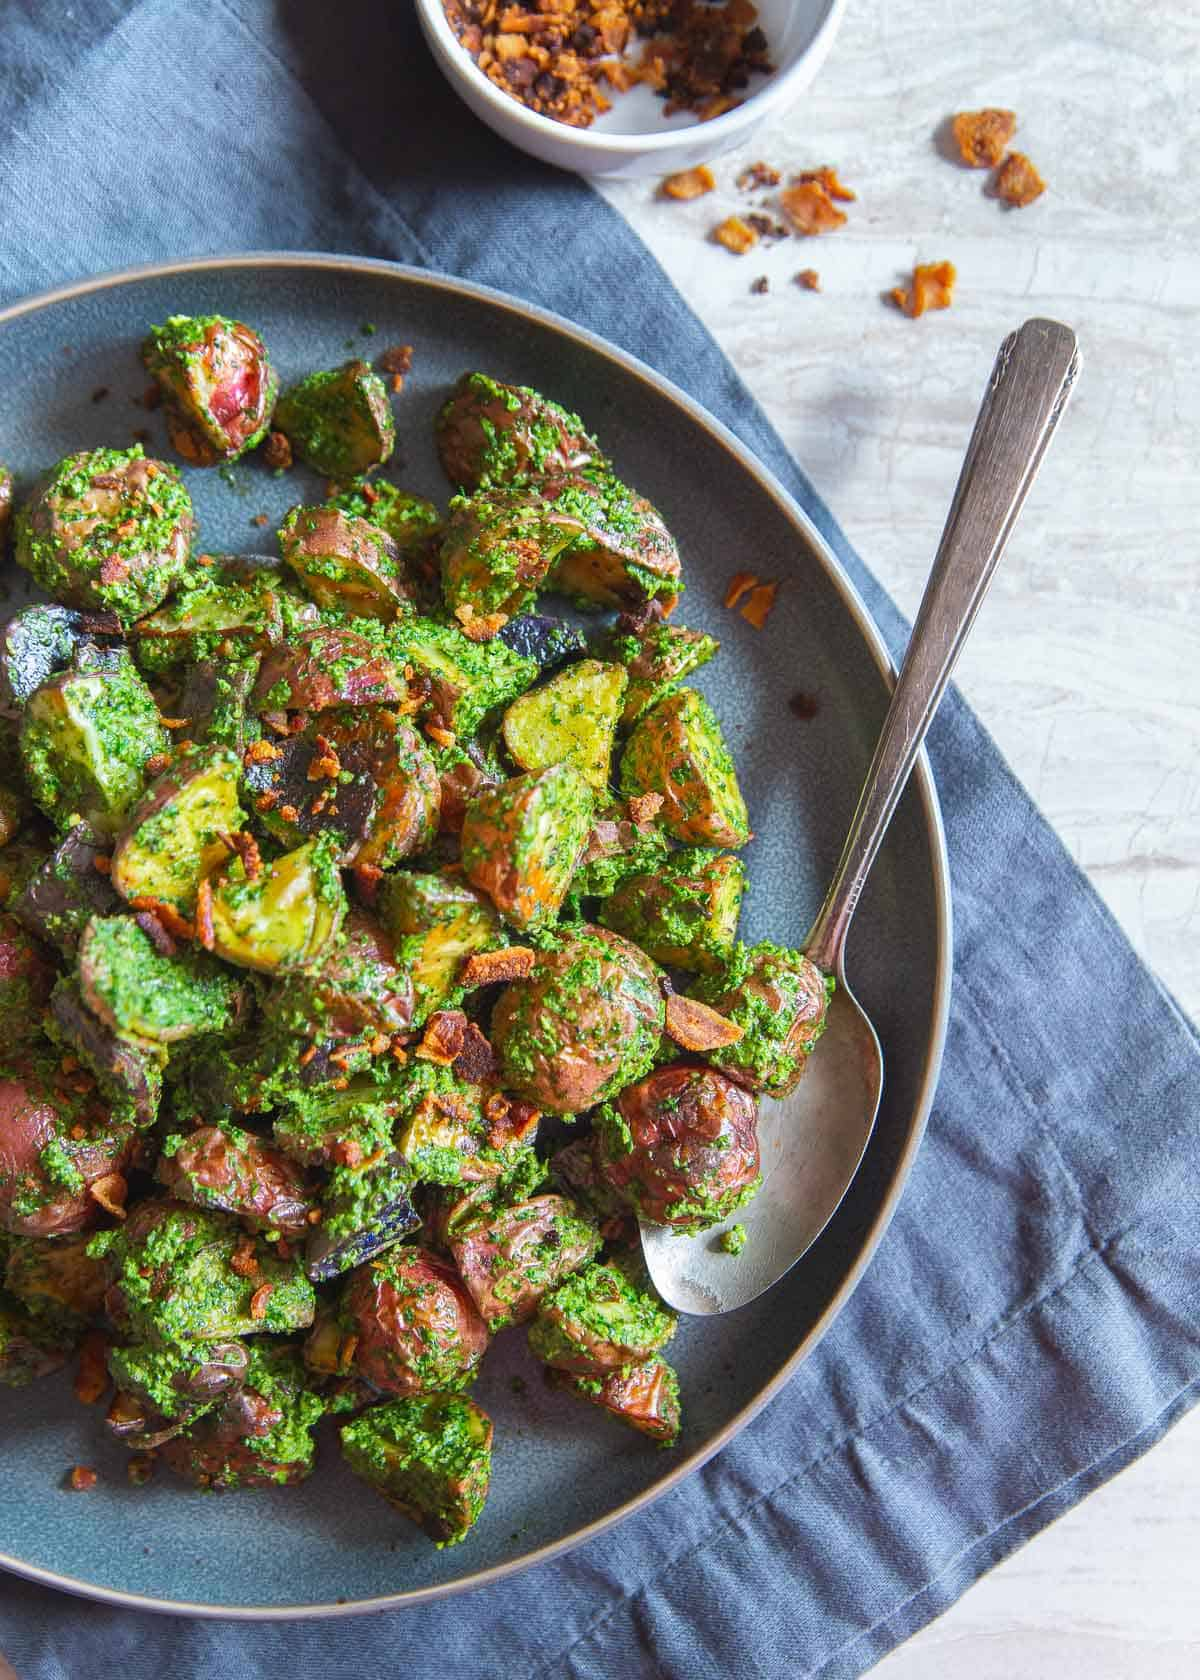 These easy roasted pesto potatoes with optional crumbled bacon make the best easy side dish that goes perfectly with any meat or fish dinner.